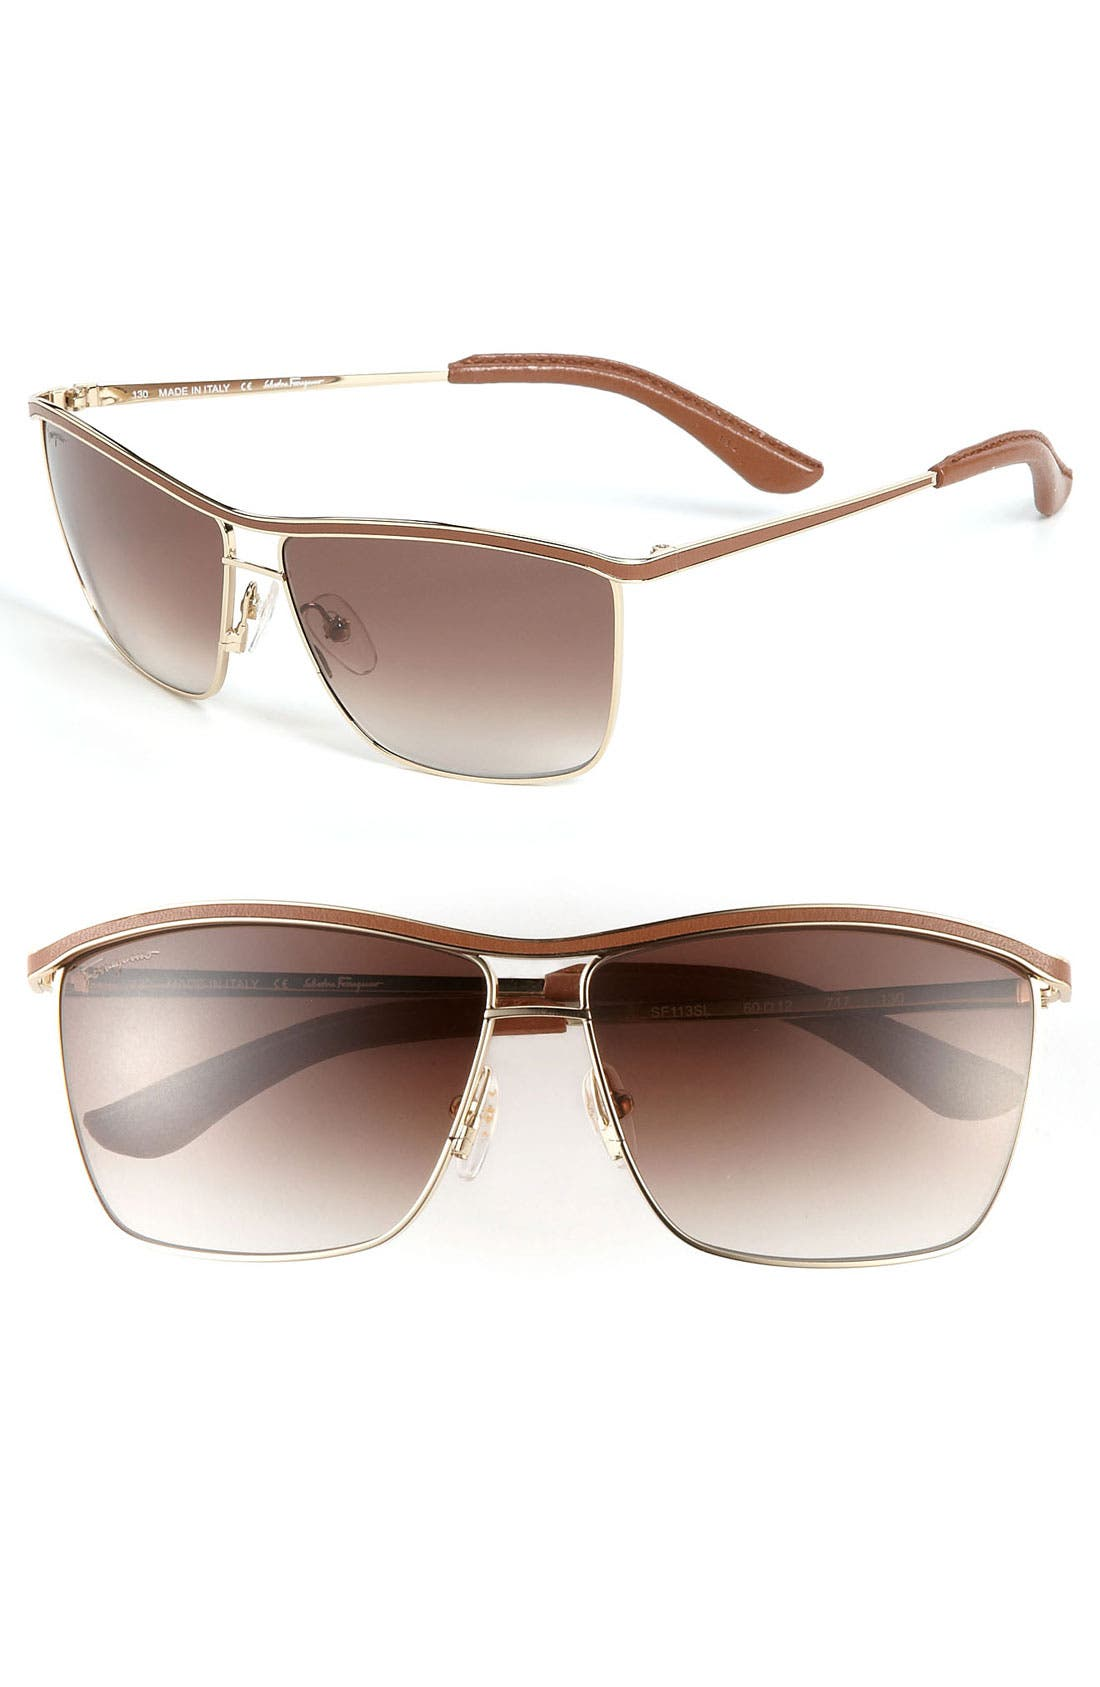 Alternate Image 1 Selected - Salvatore Ferragamo Navigator Sunglasses